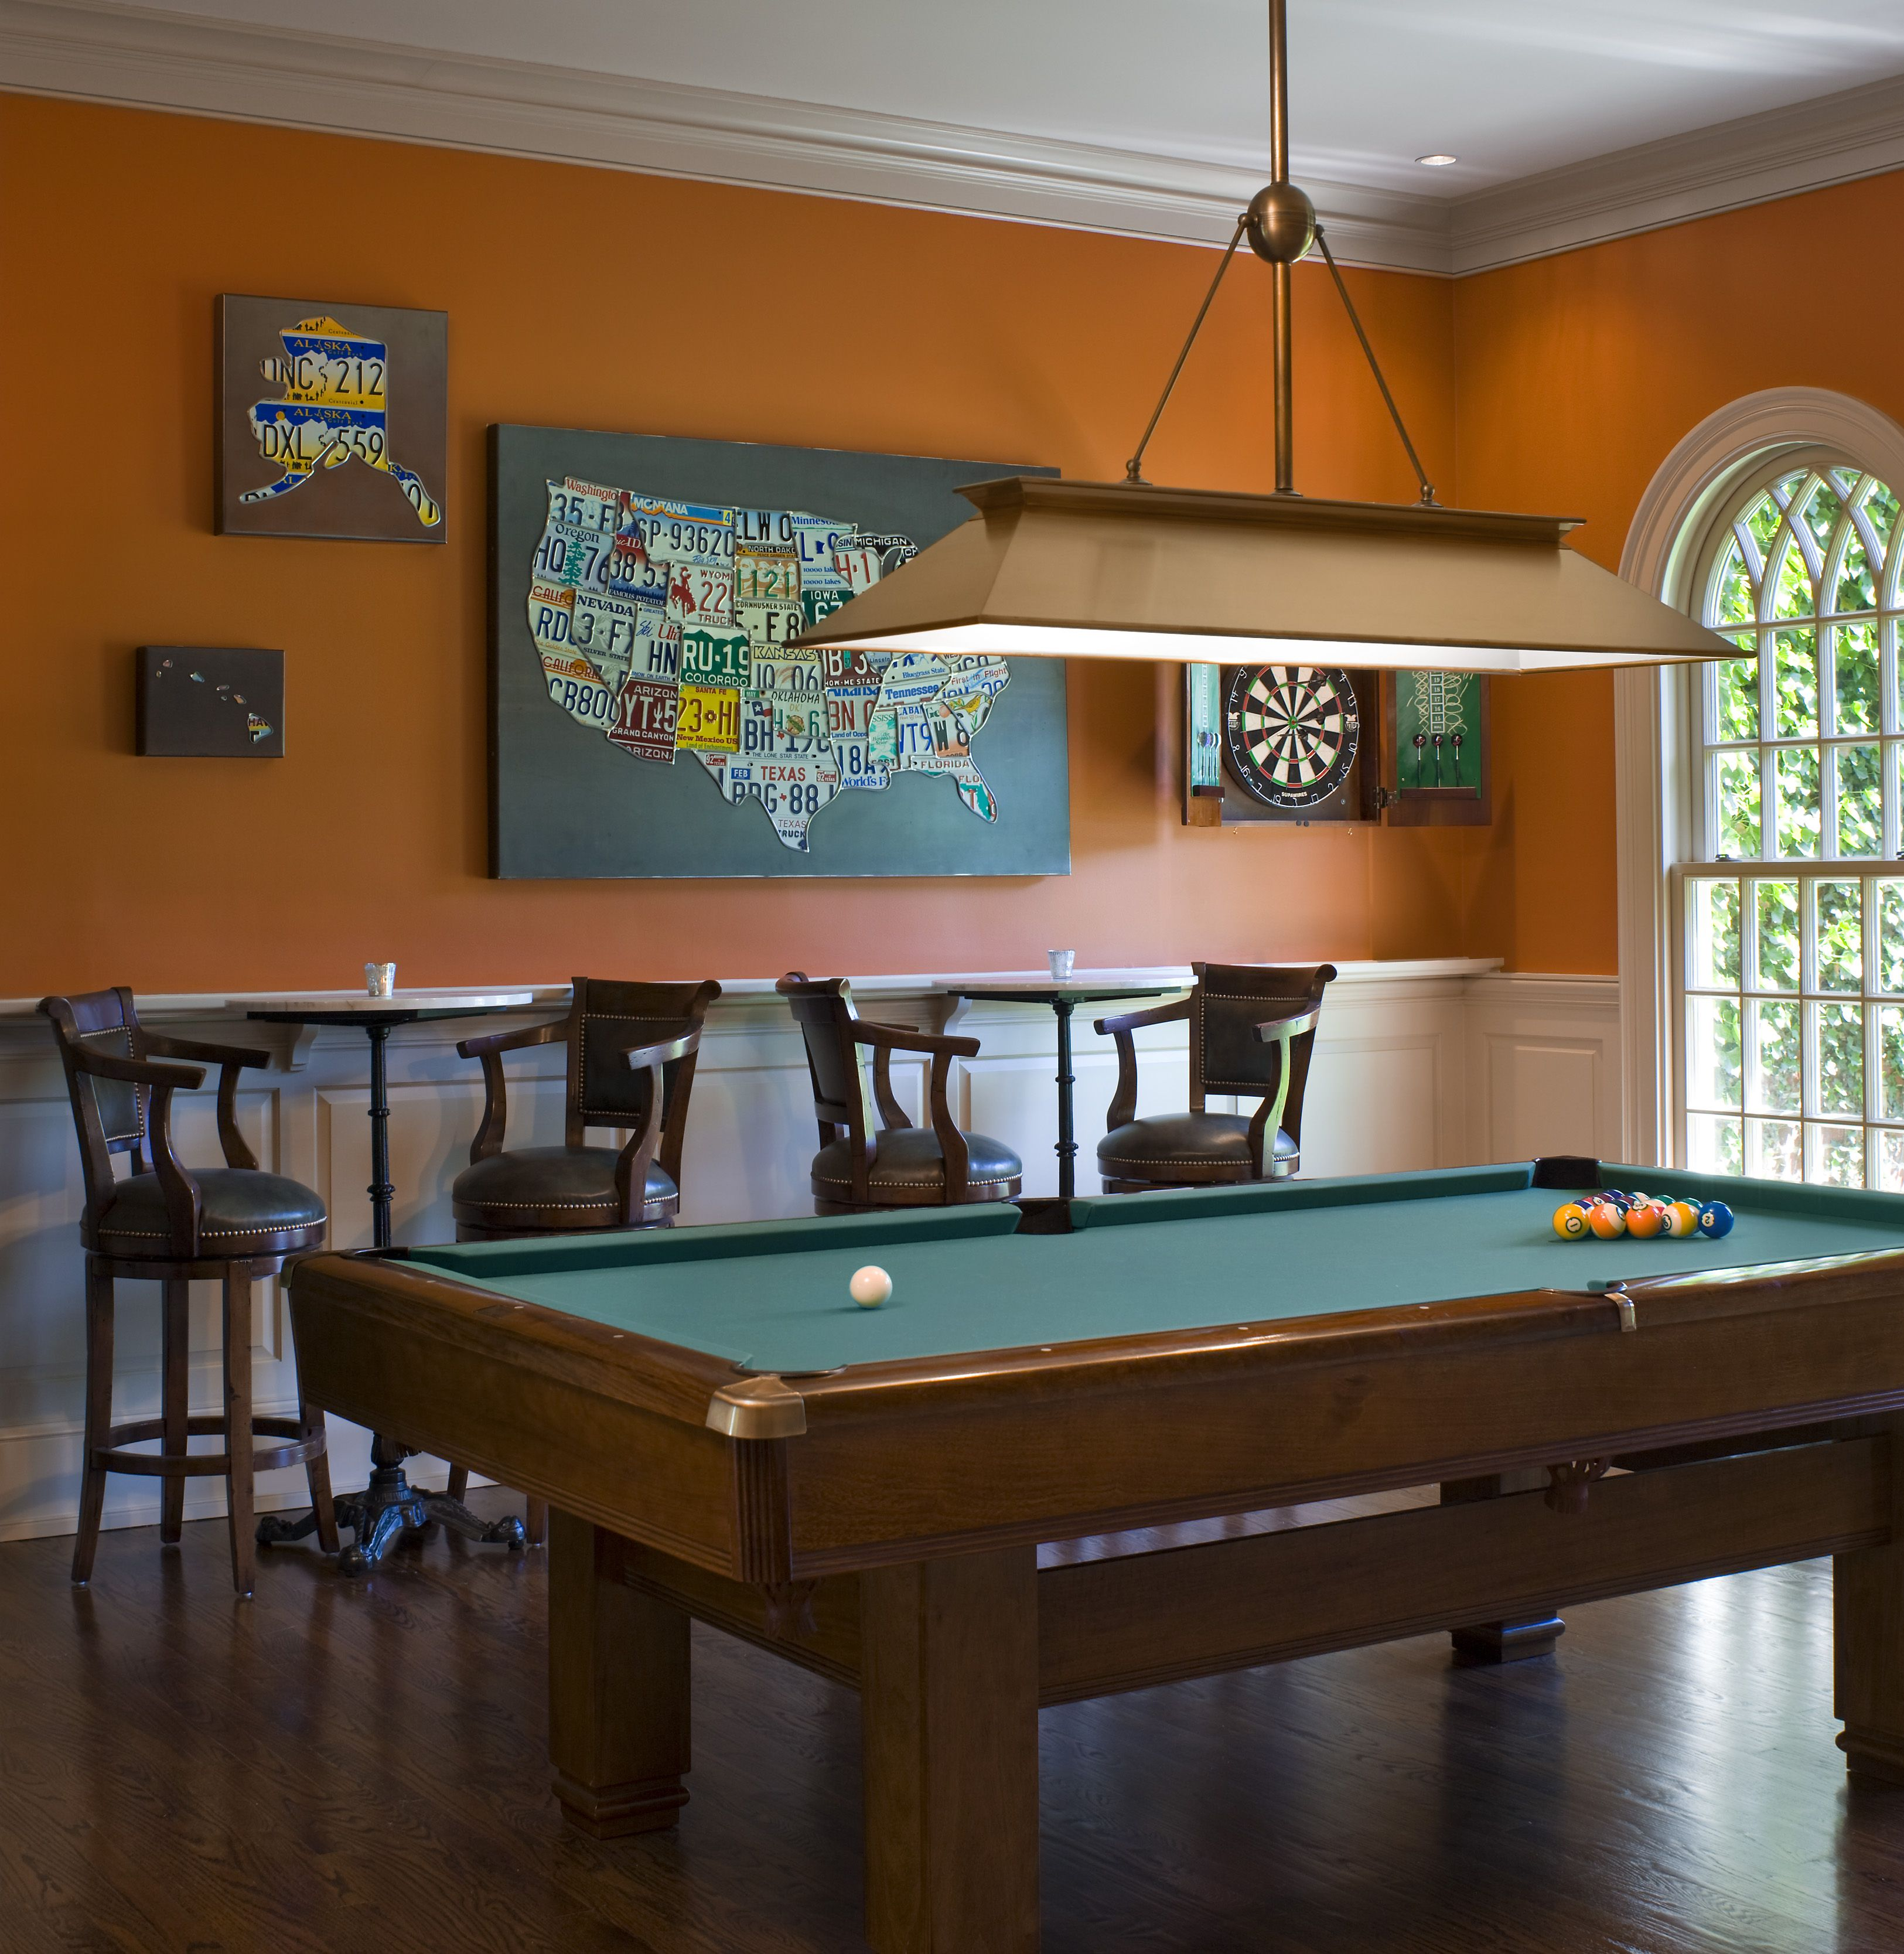 If you have a game room or recreation area in your home, it's important to have good lighting. Pin by Tammy Marconi on Basement Bar | Pool table room ...